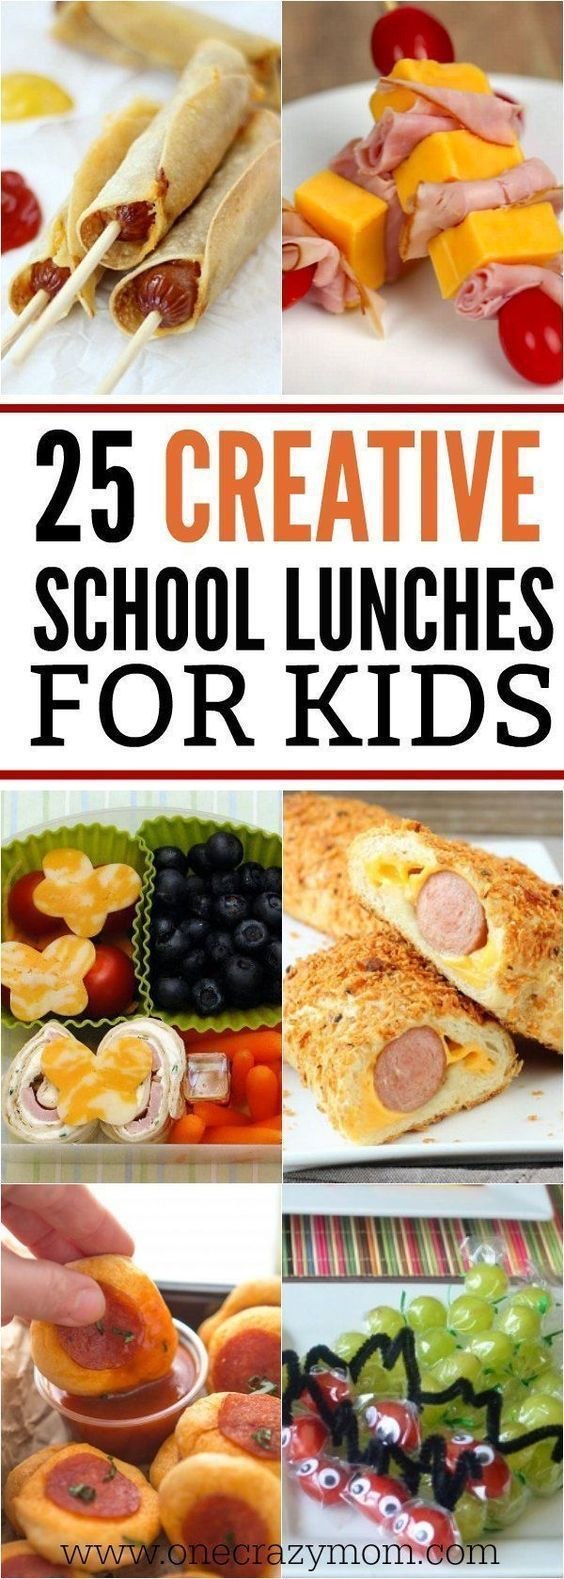 School Dining Ideas for Kids – 25 Simple Shoes …